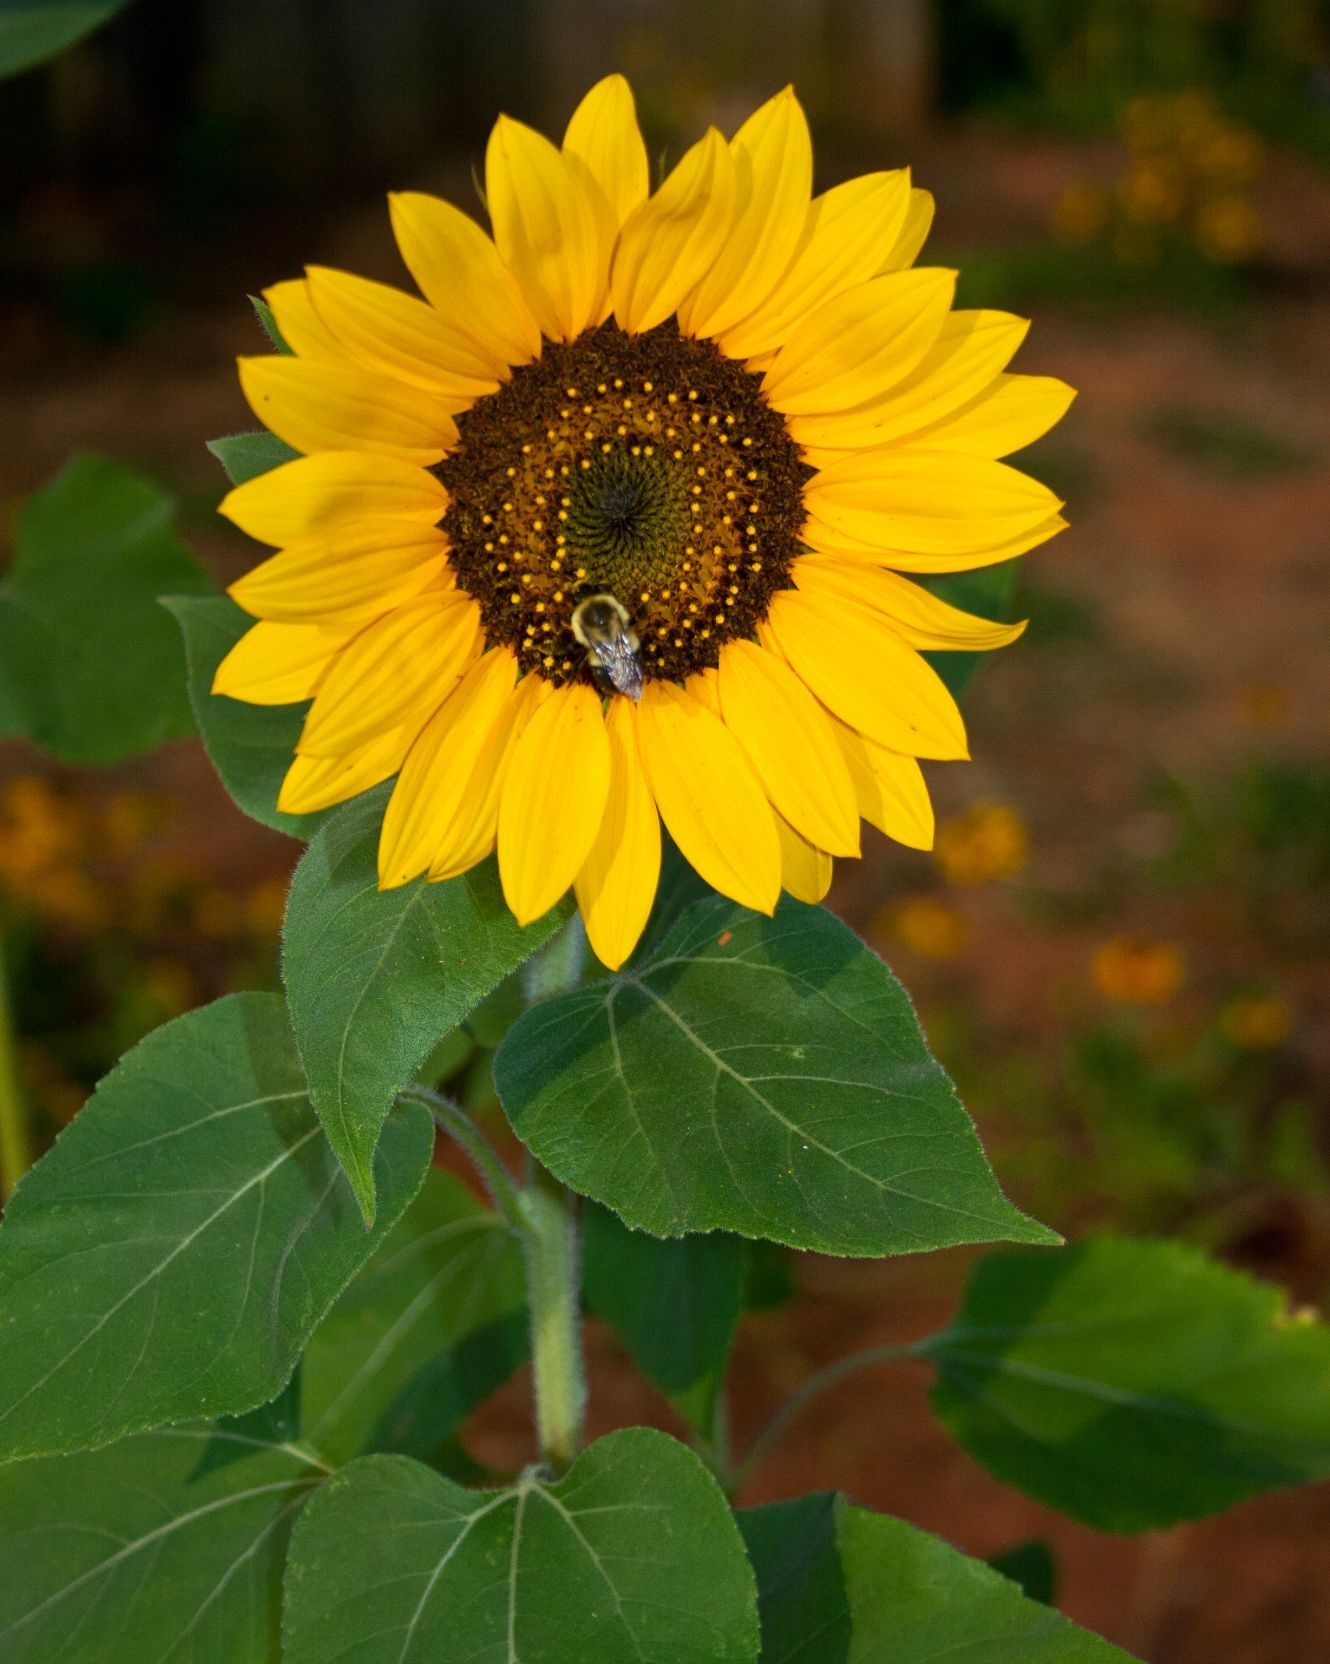 Single sunflower photo